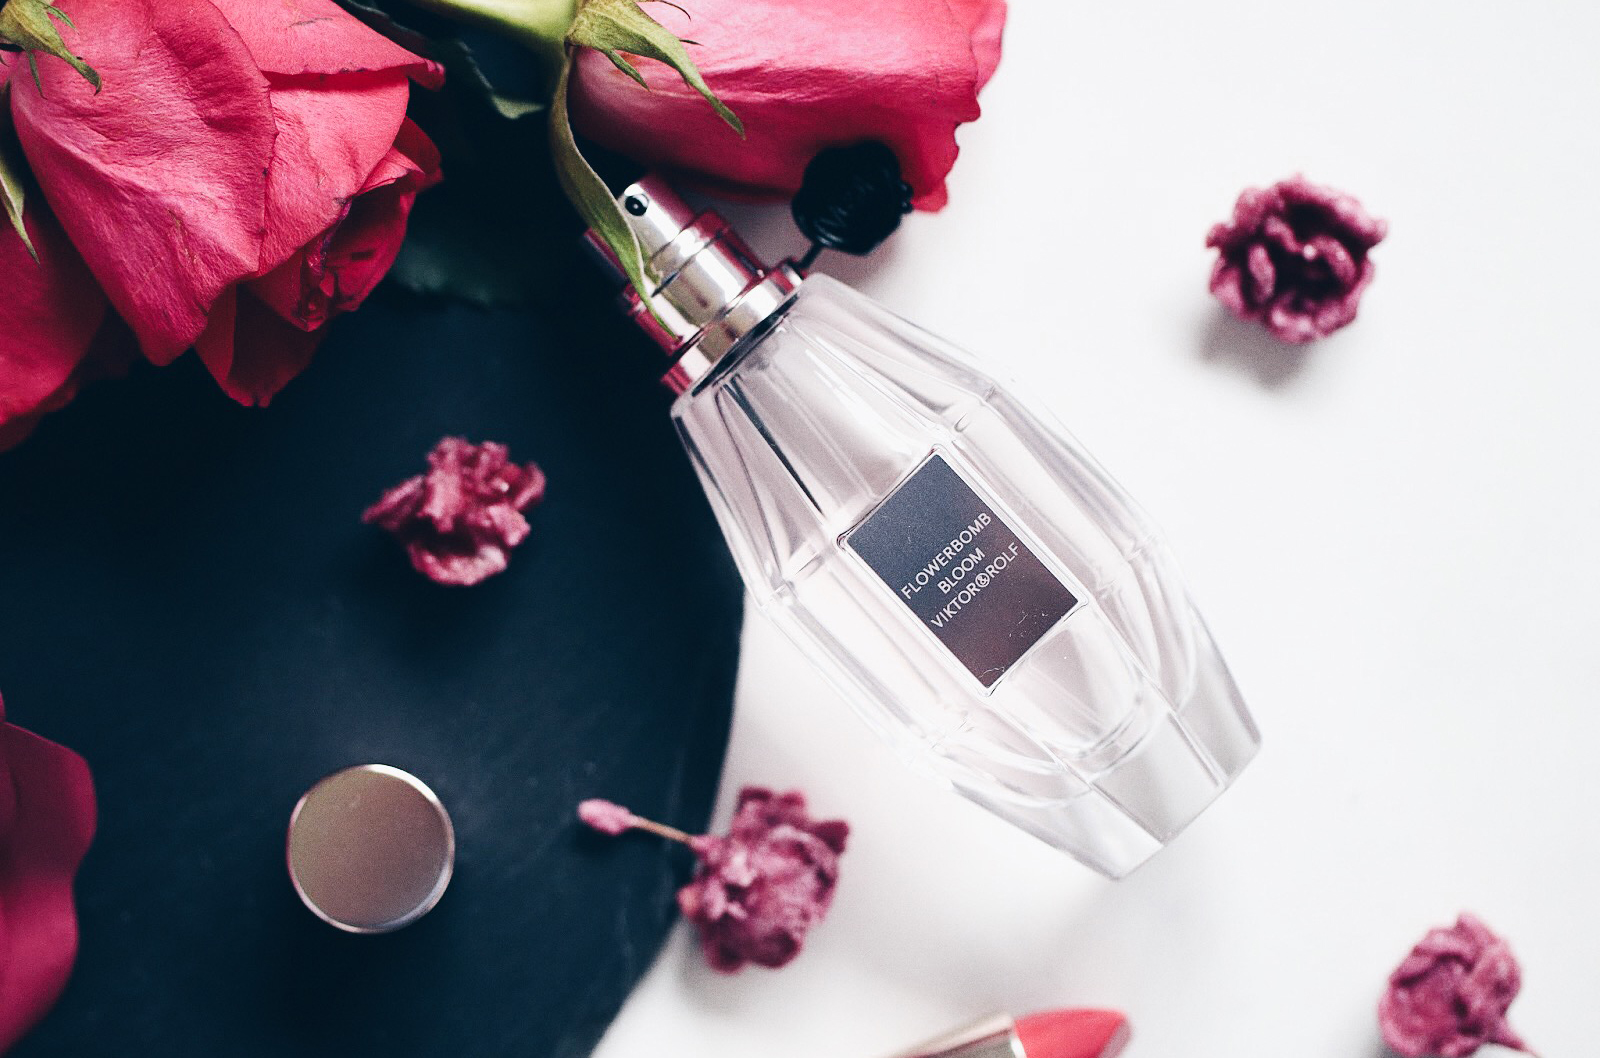 victor & rolf flower bomb bloom parfum avis test